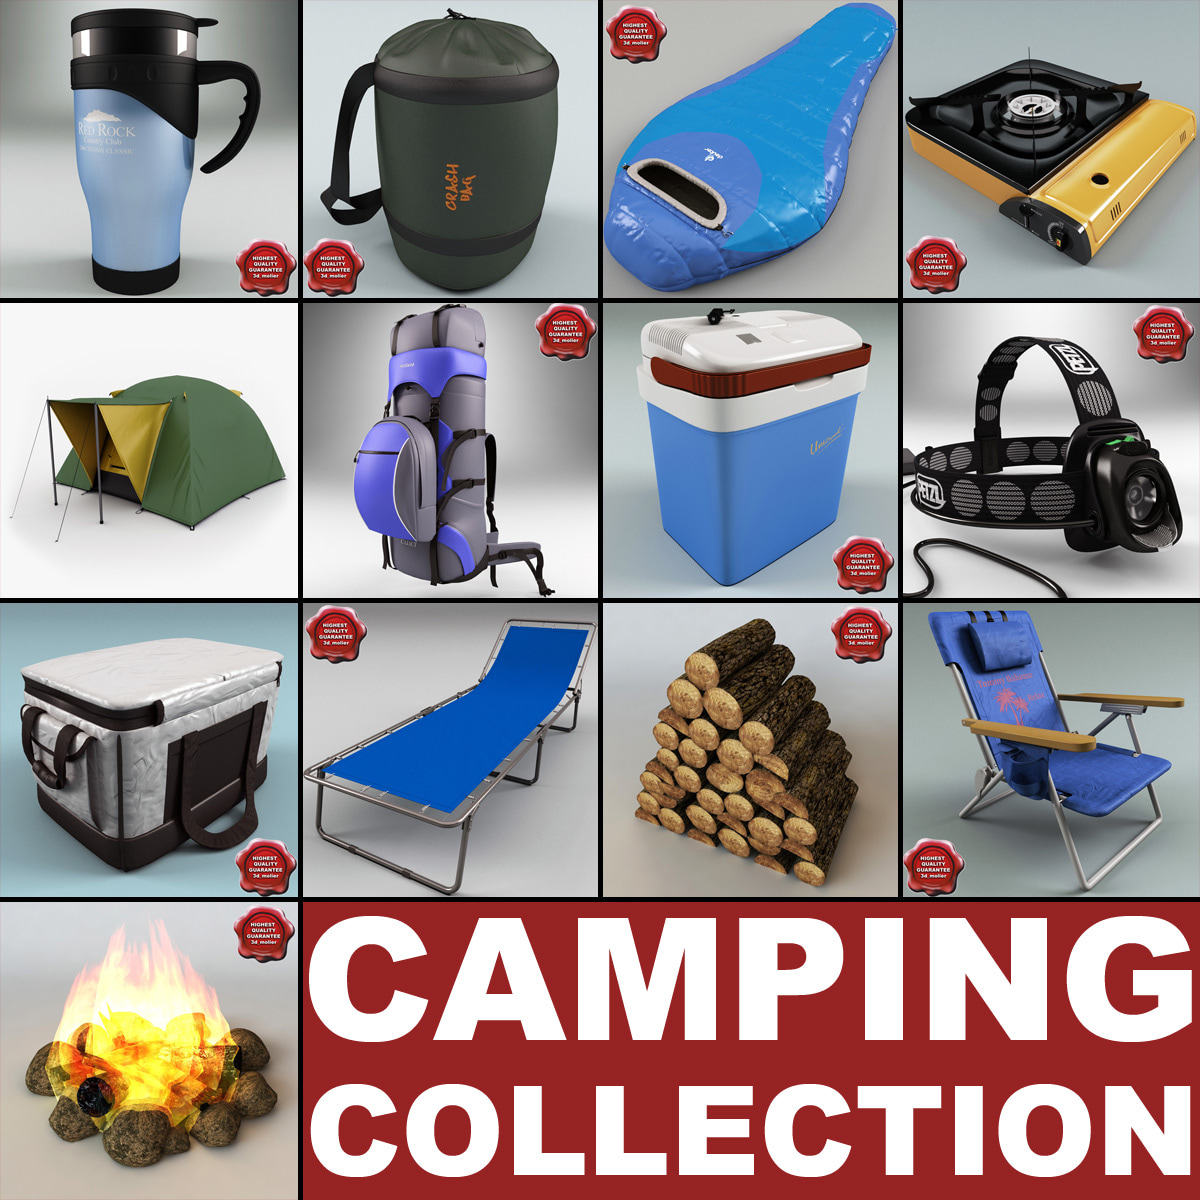 Camping_Collection_000.jpg